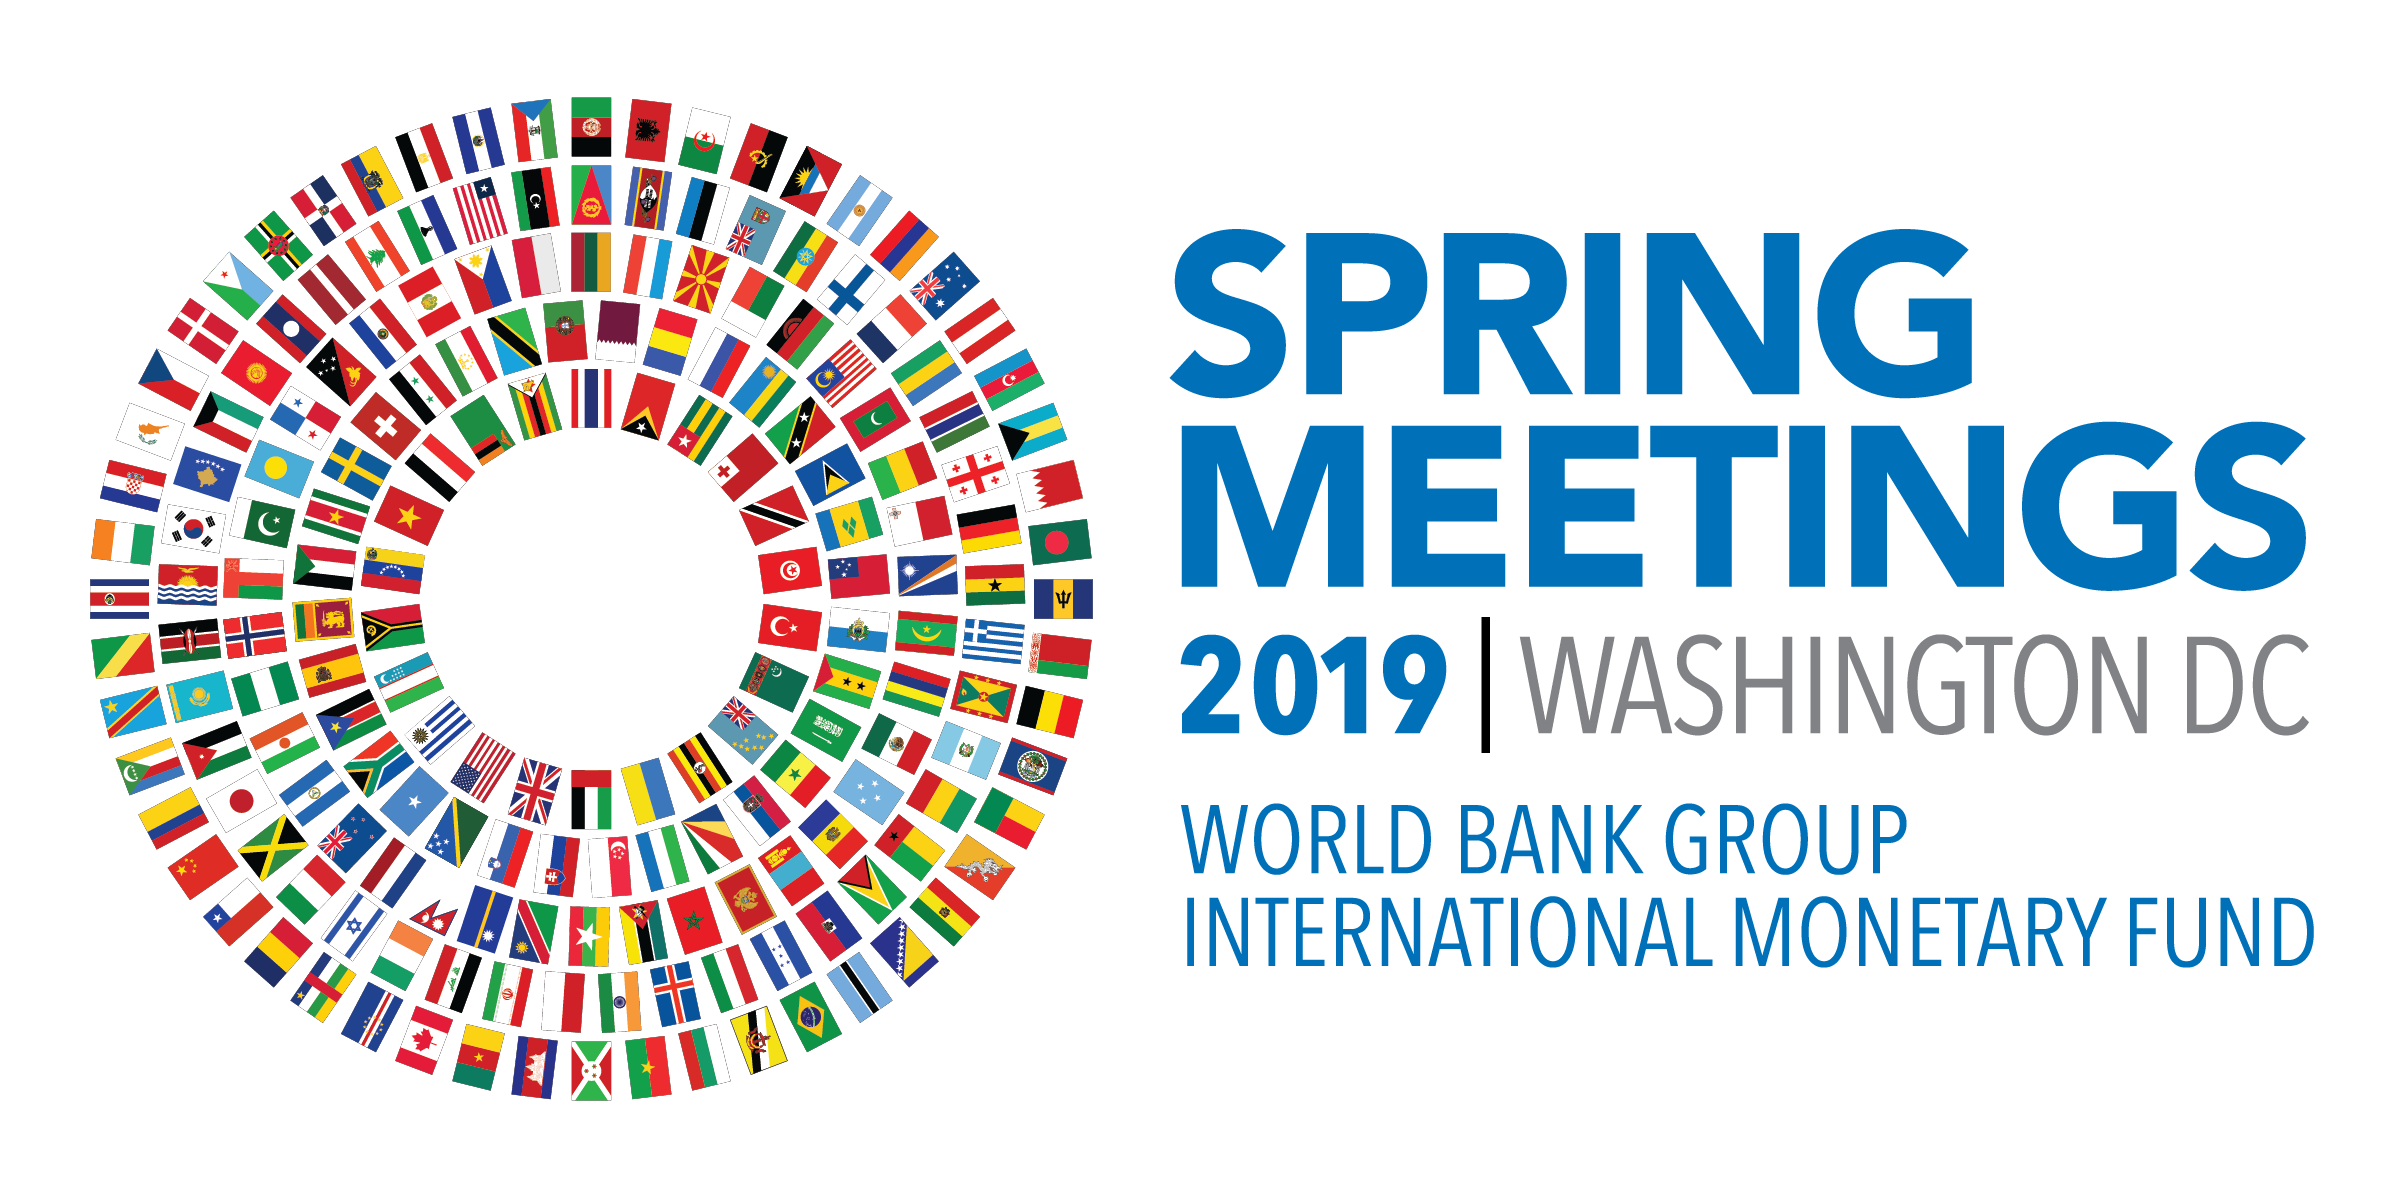 World Bank and IMF Spring Meetings - Event - Convergence